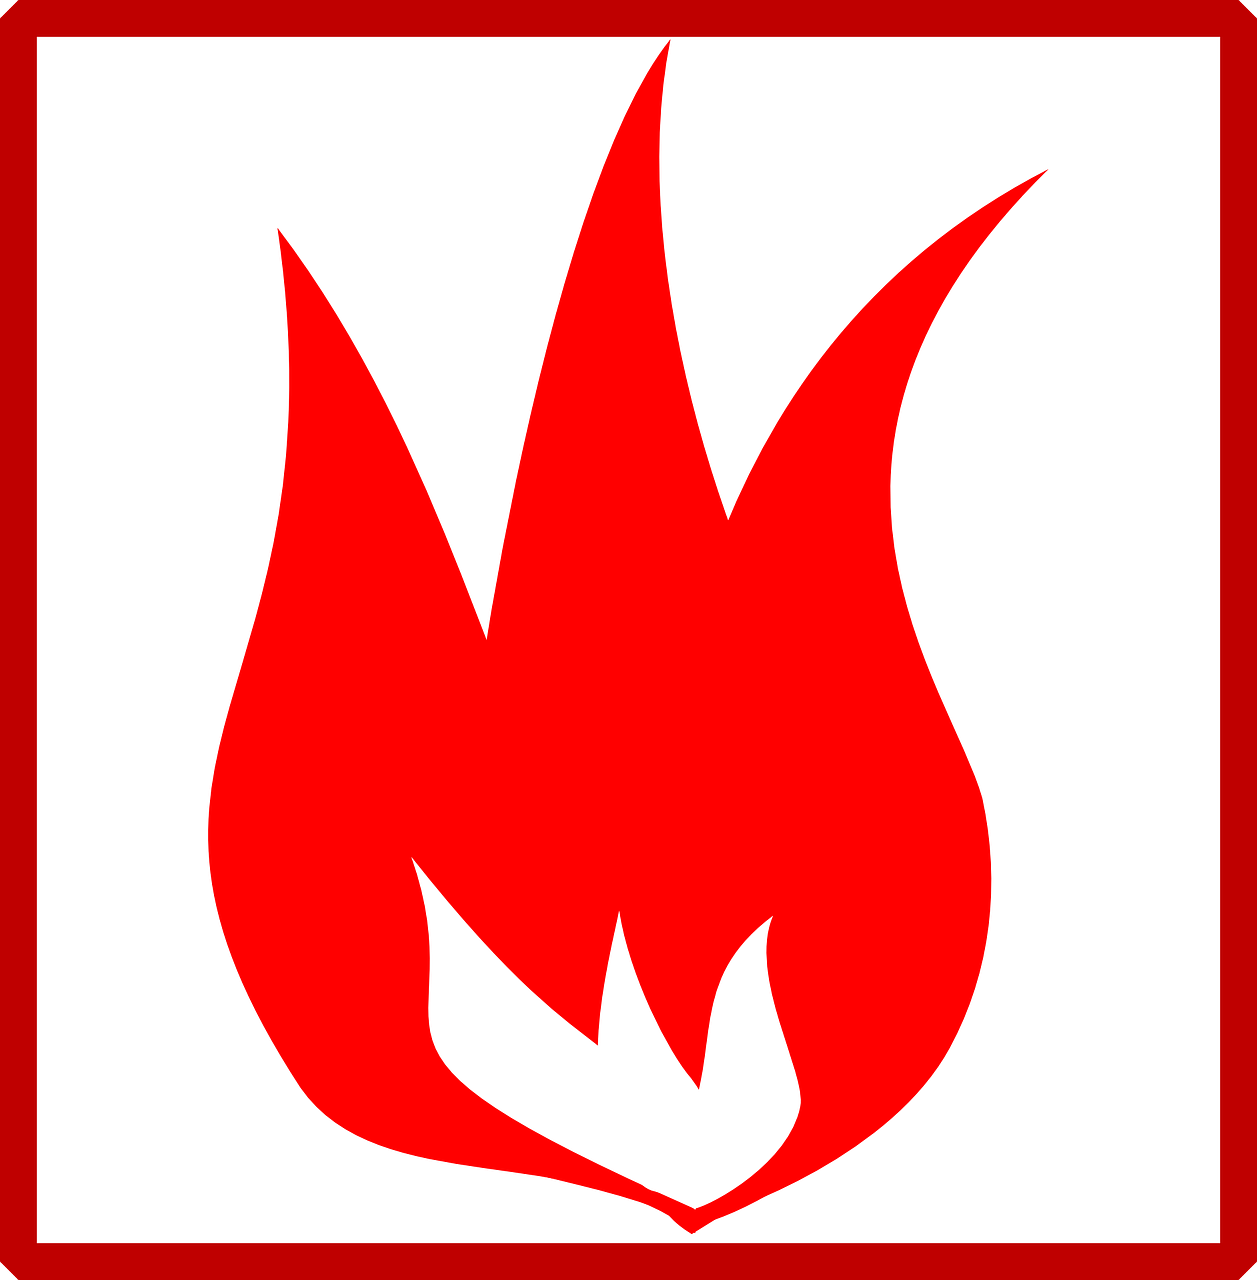 How to draw flames fire - free stencils 4